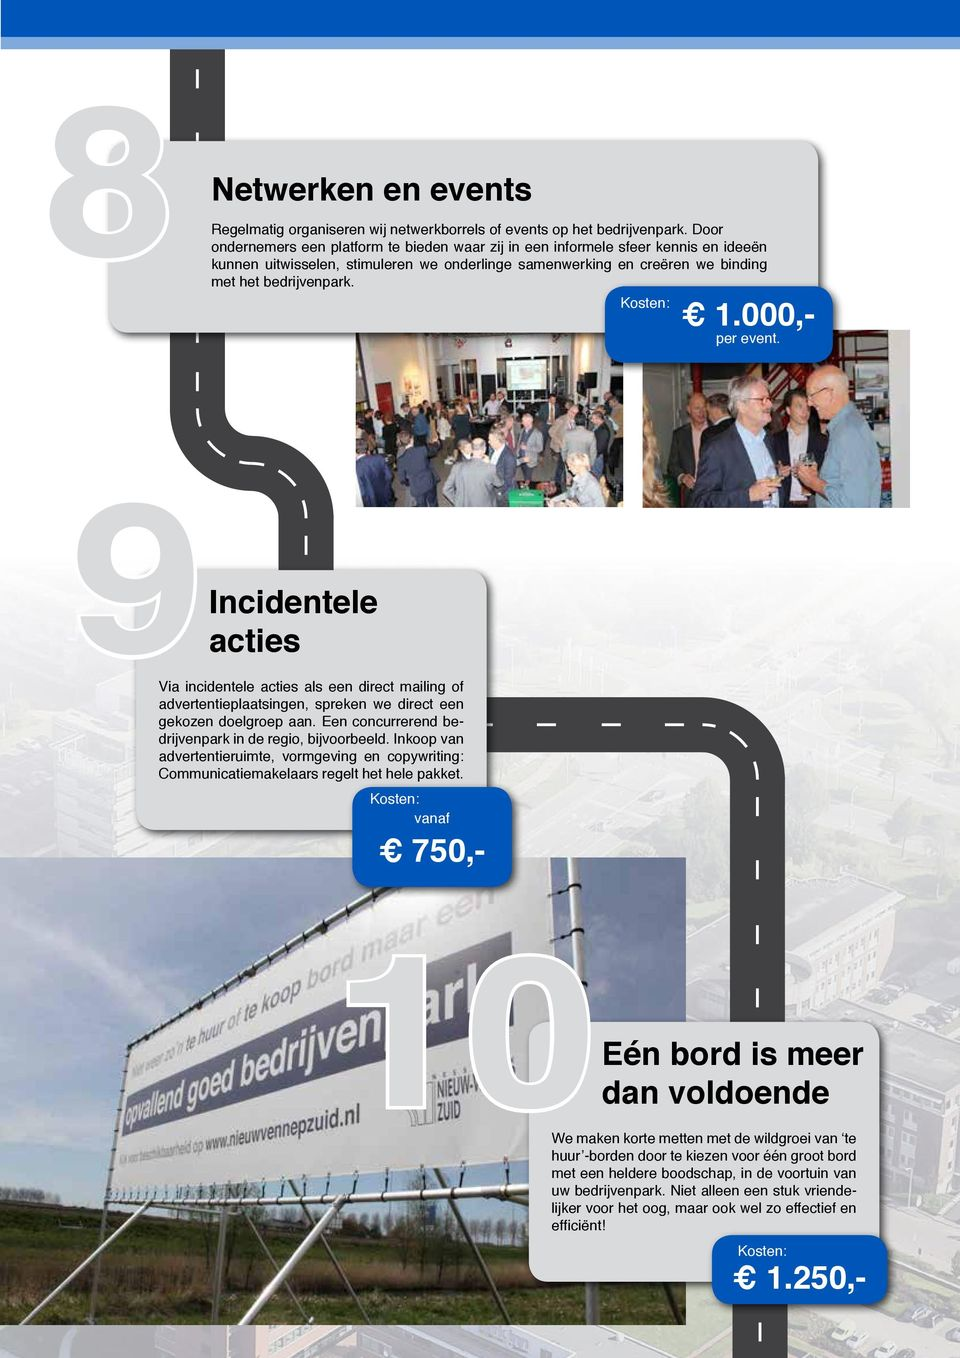 000,- per event. 9 Incidentele acties Via incidentele acties als een direct mailing of advertentieplaatsingen, spreken we direct een gekozen doelgroep aan.